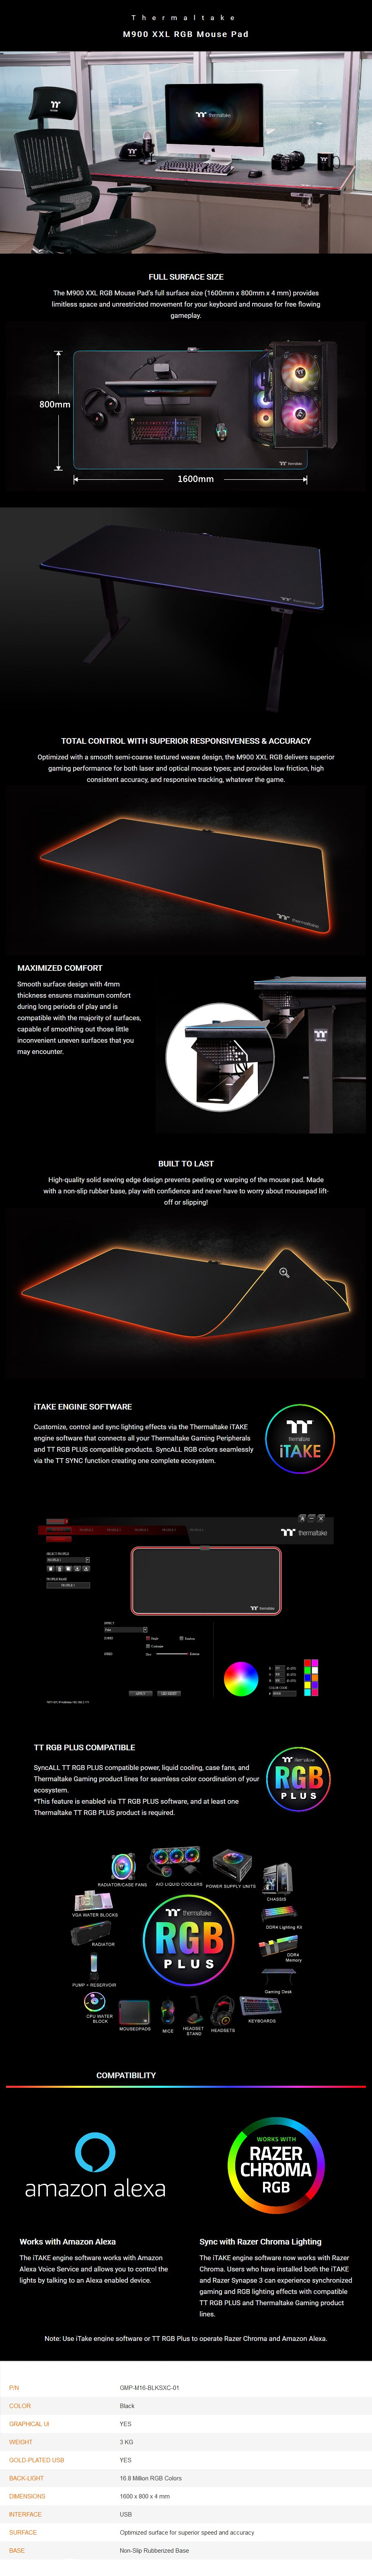 Thermaltake M900 XXL RGB Extended Gaming Mouse Pad - Overview 1